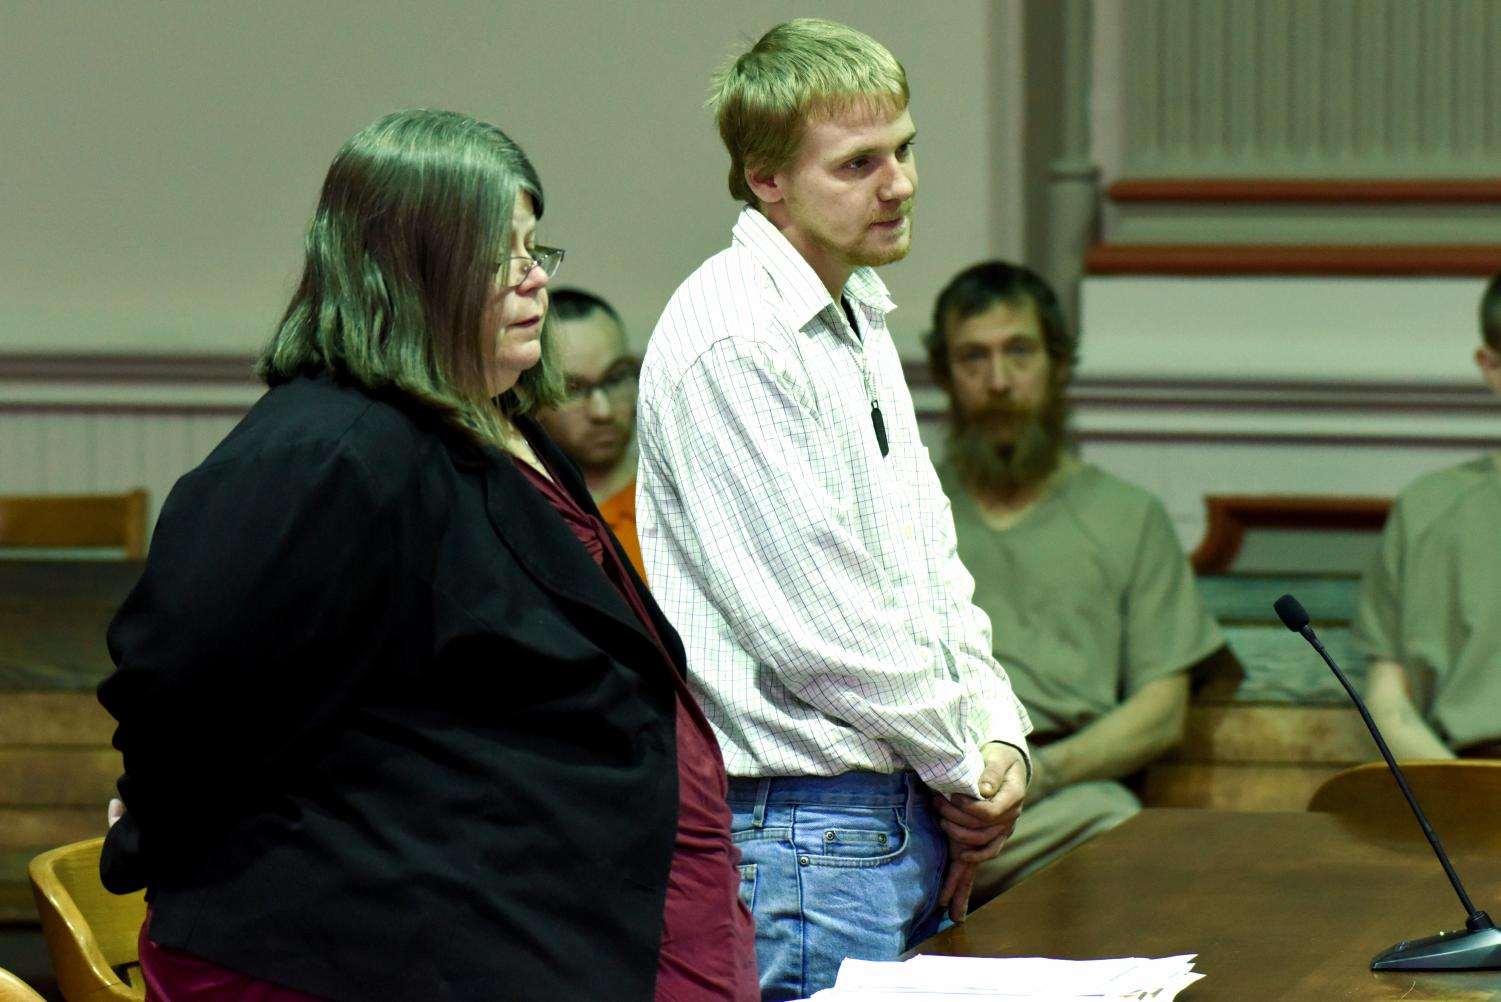 Kyler Mangold, 21, pleads guilty to one count of unlawful sexual contact with a minor before Judge Kelly Cottrill Friday.